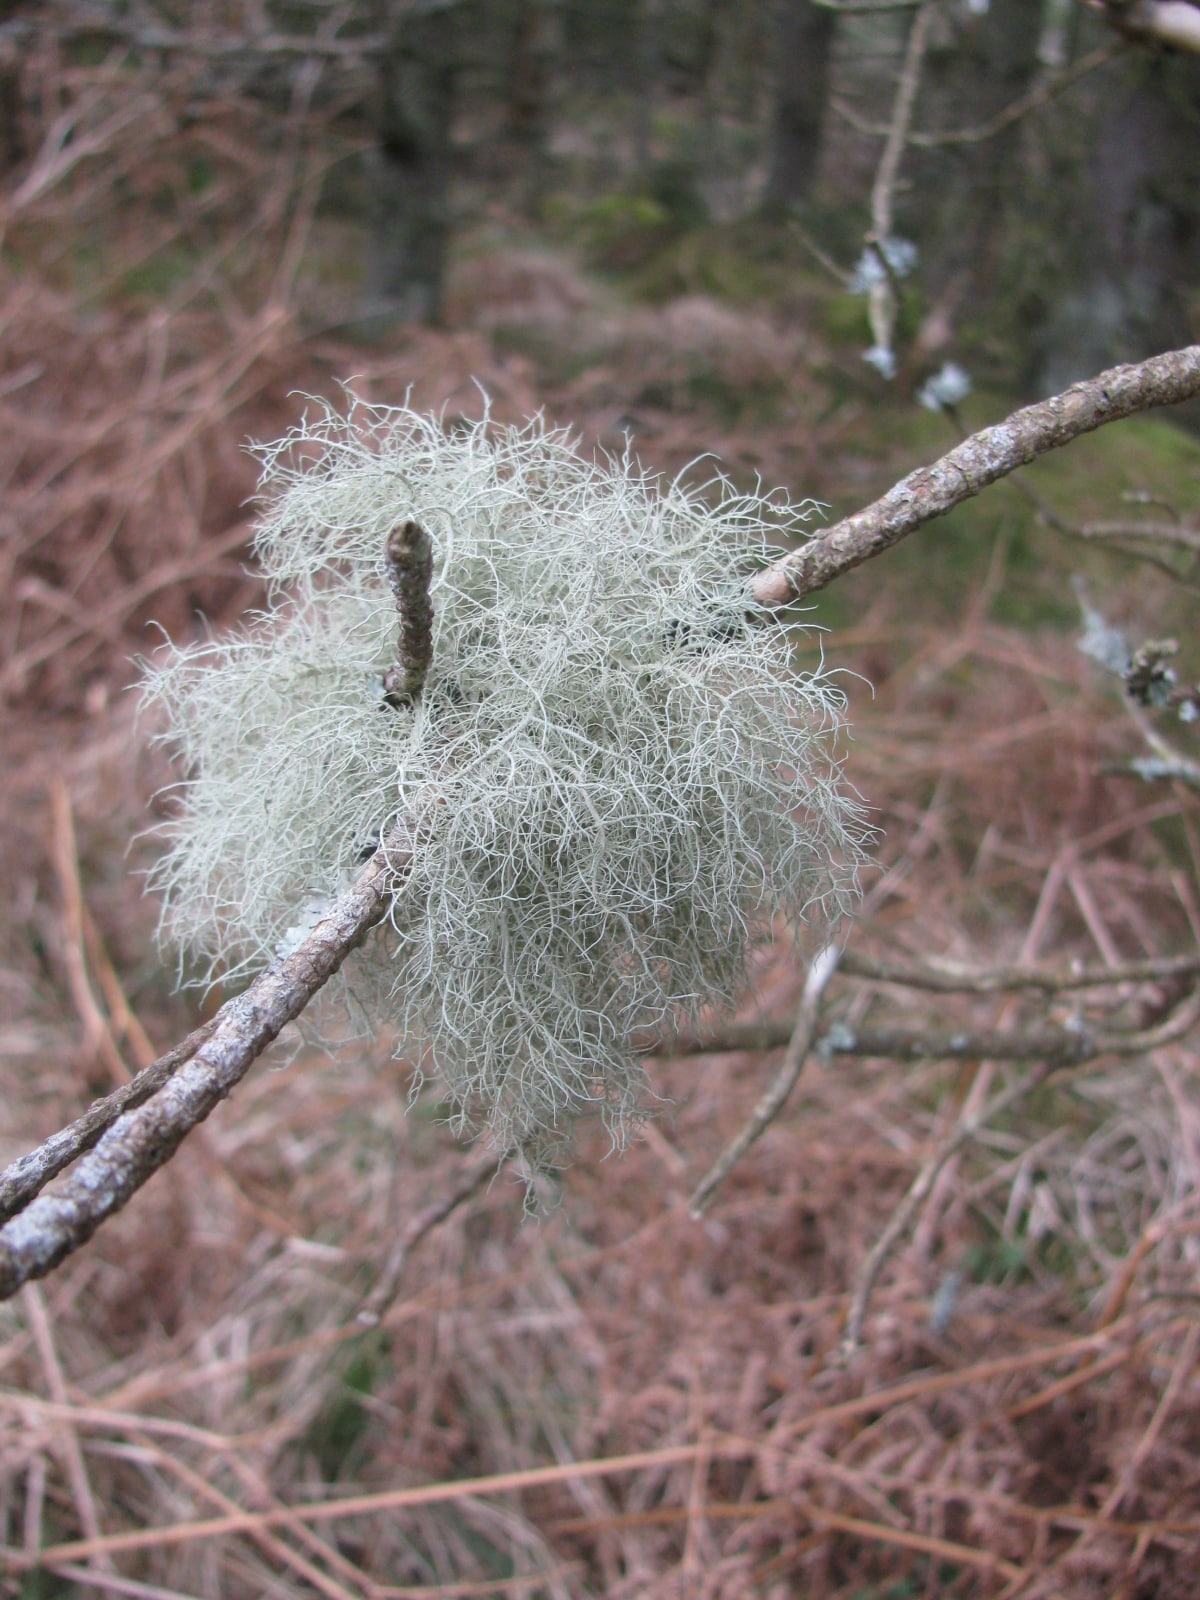 An example of Bearch Lichen found in Northumberland National Park